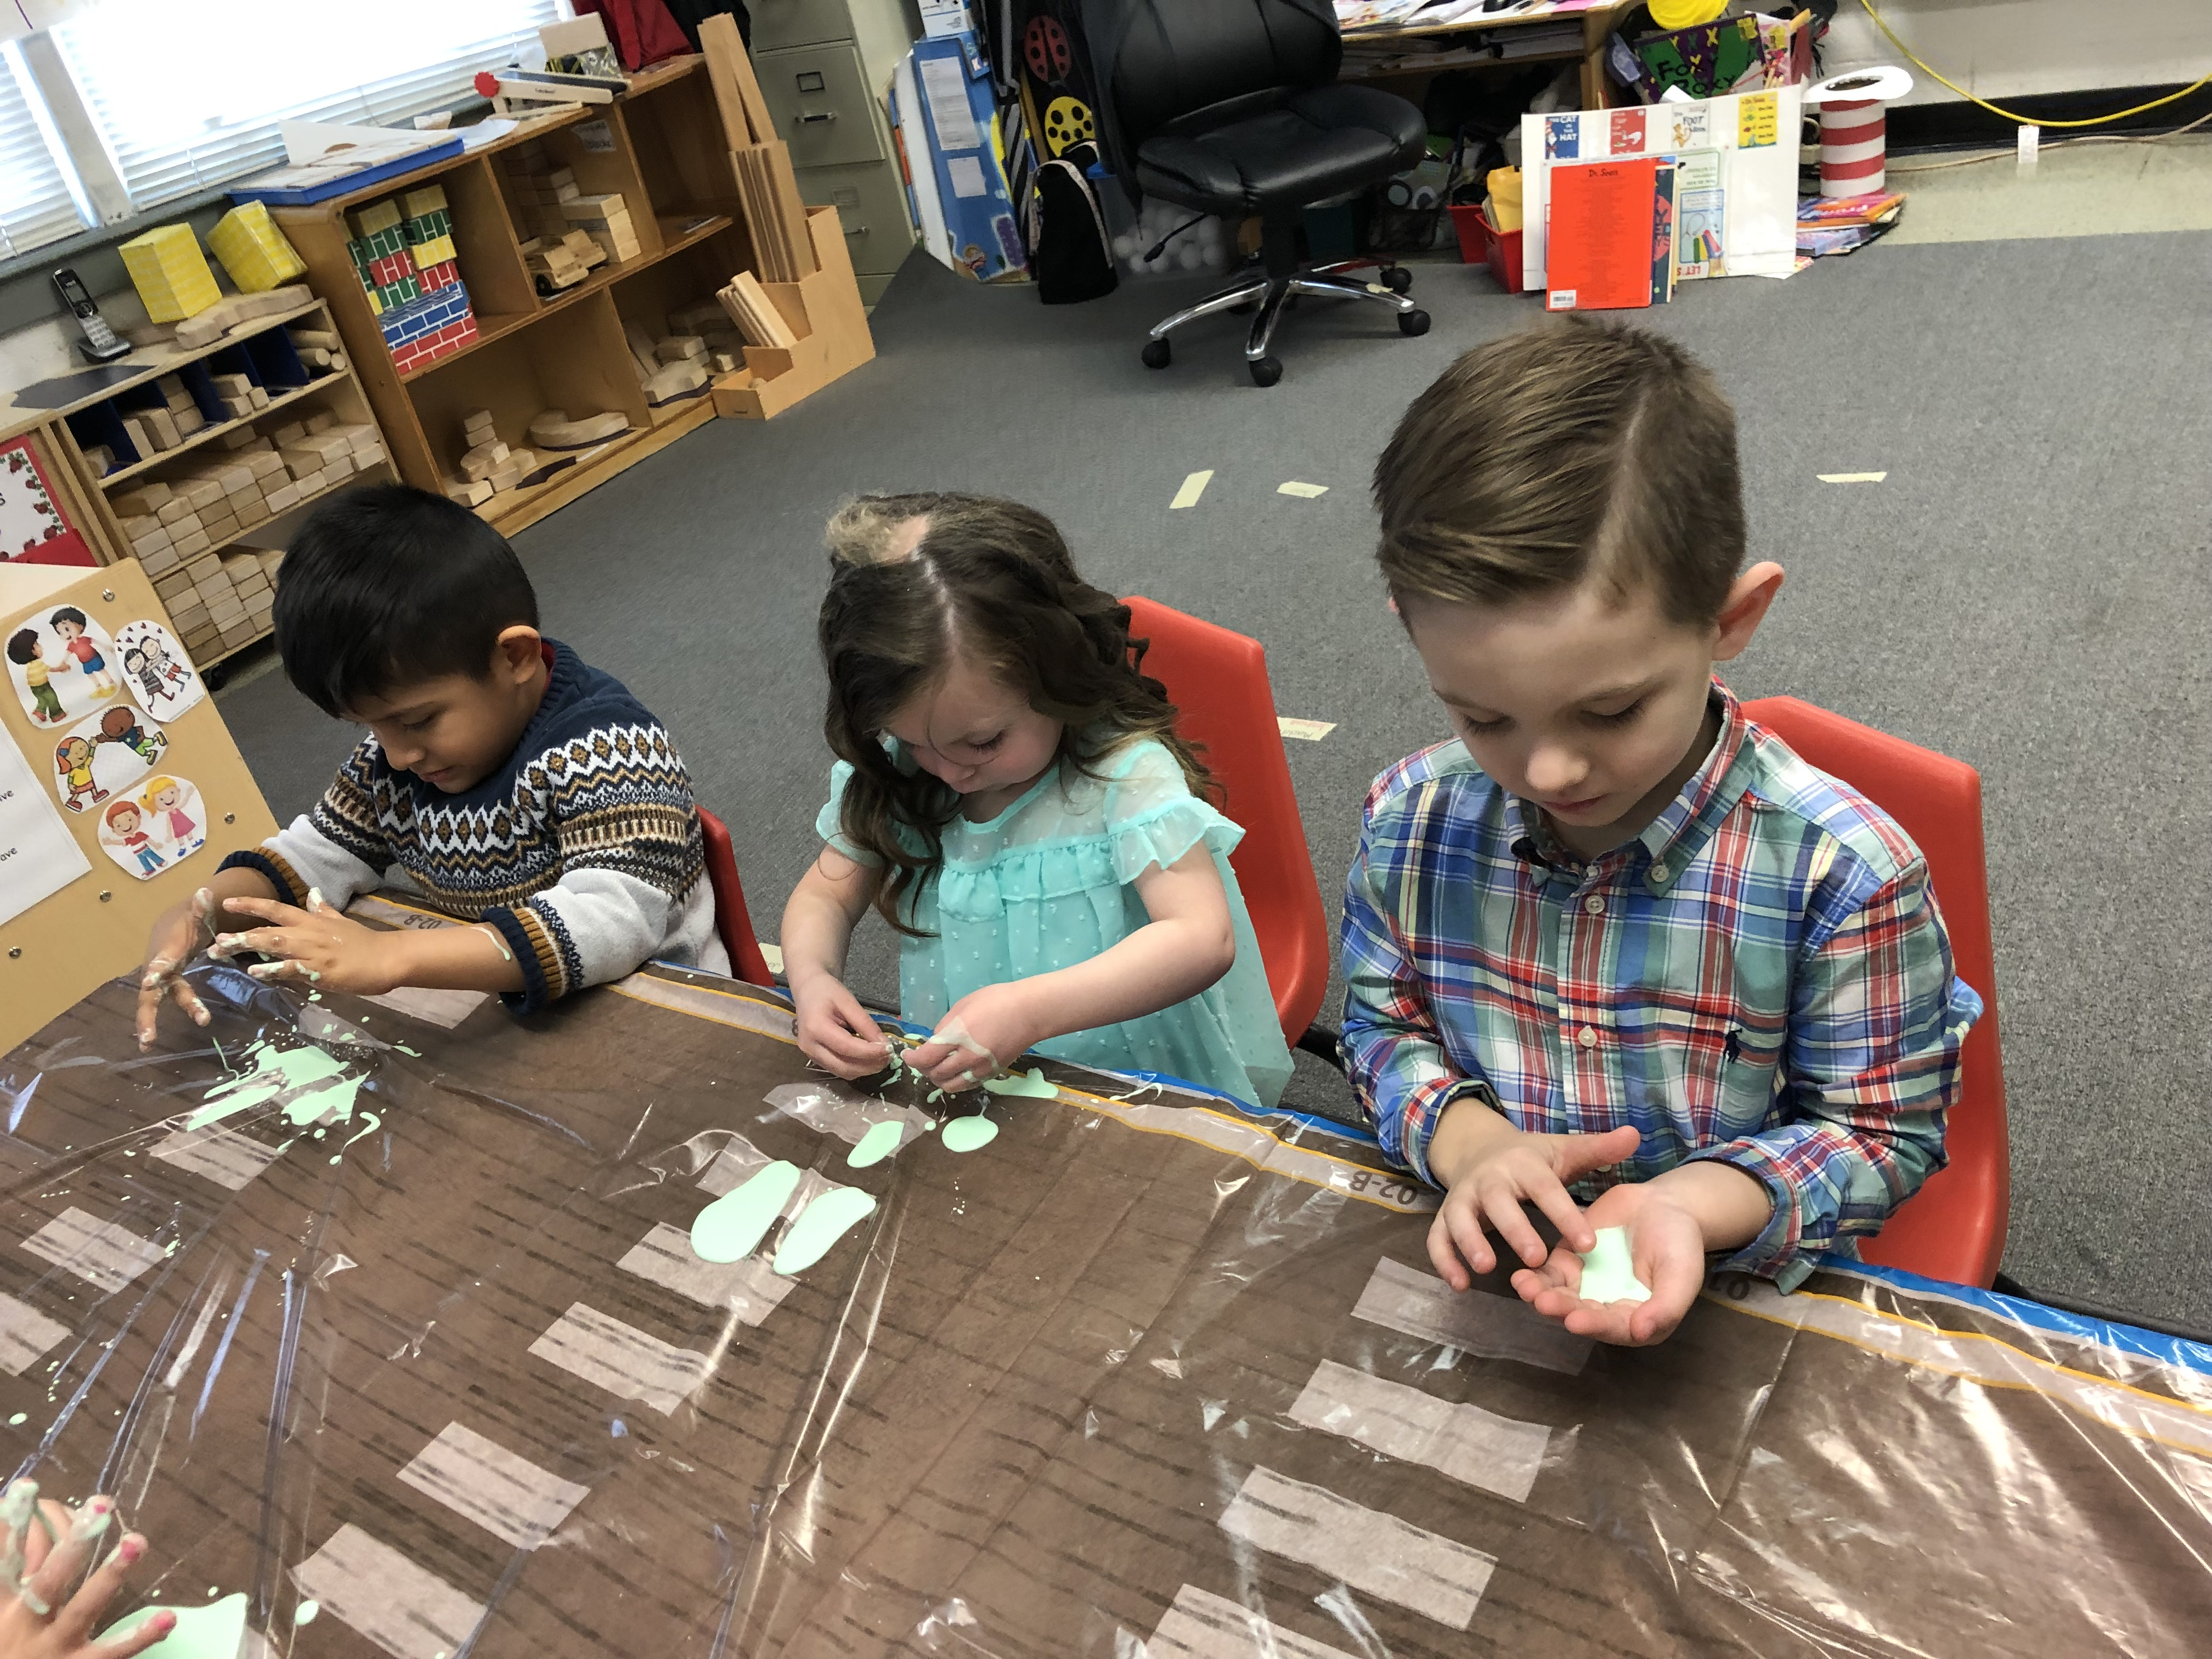 "(L-R) Joshua Santiz Martinez, Bella Foster, and Easton Dishman experimenting with Oobleck after listening to the story, ""Bartholomew and the Oobleck"" read by preschool red group teacher Nikki Prince"